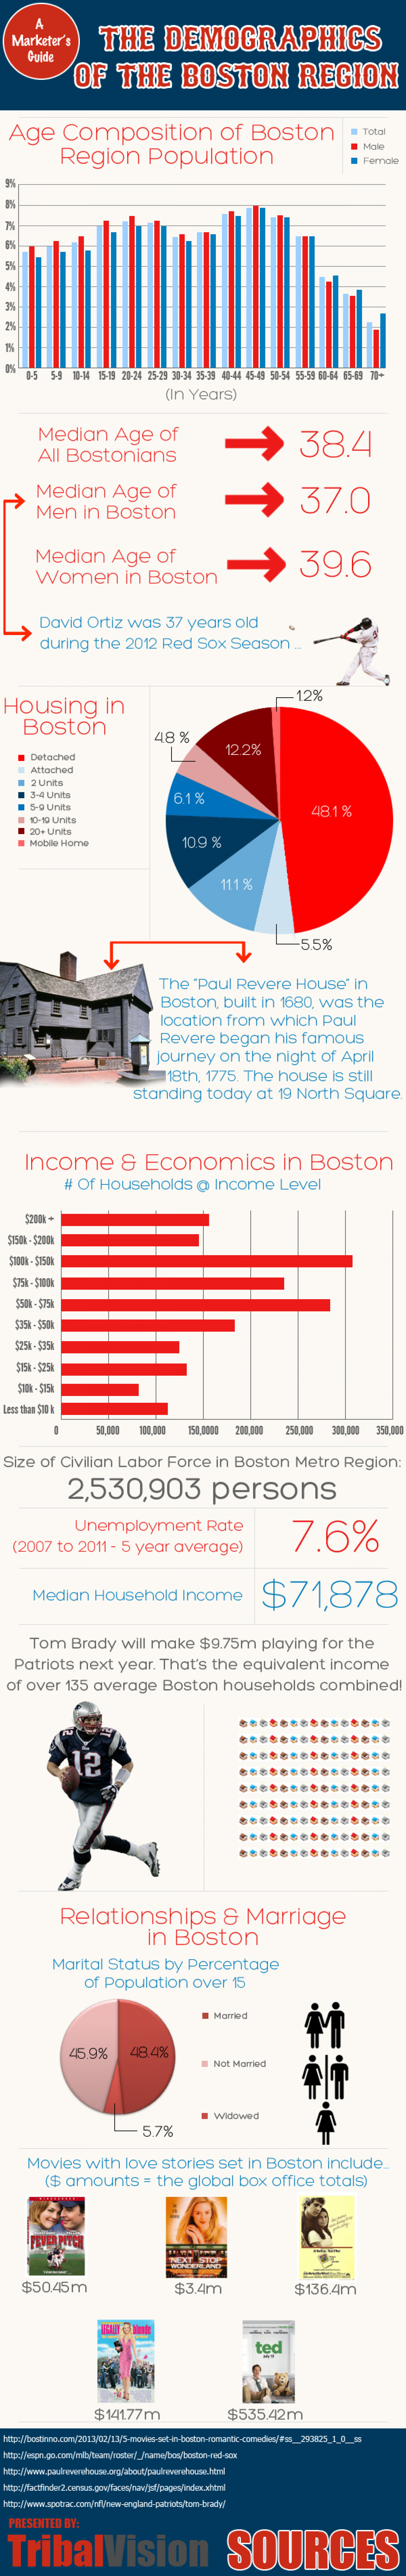 A Marketer's Guide to the Demographics of Boston Infographic